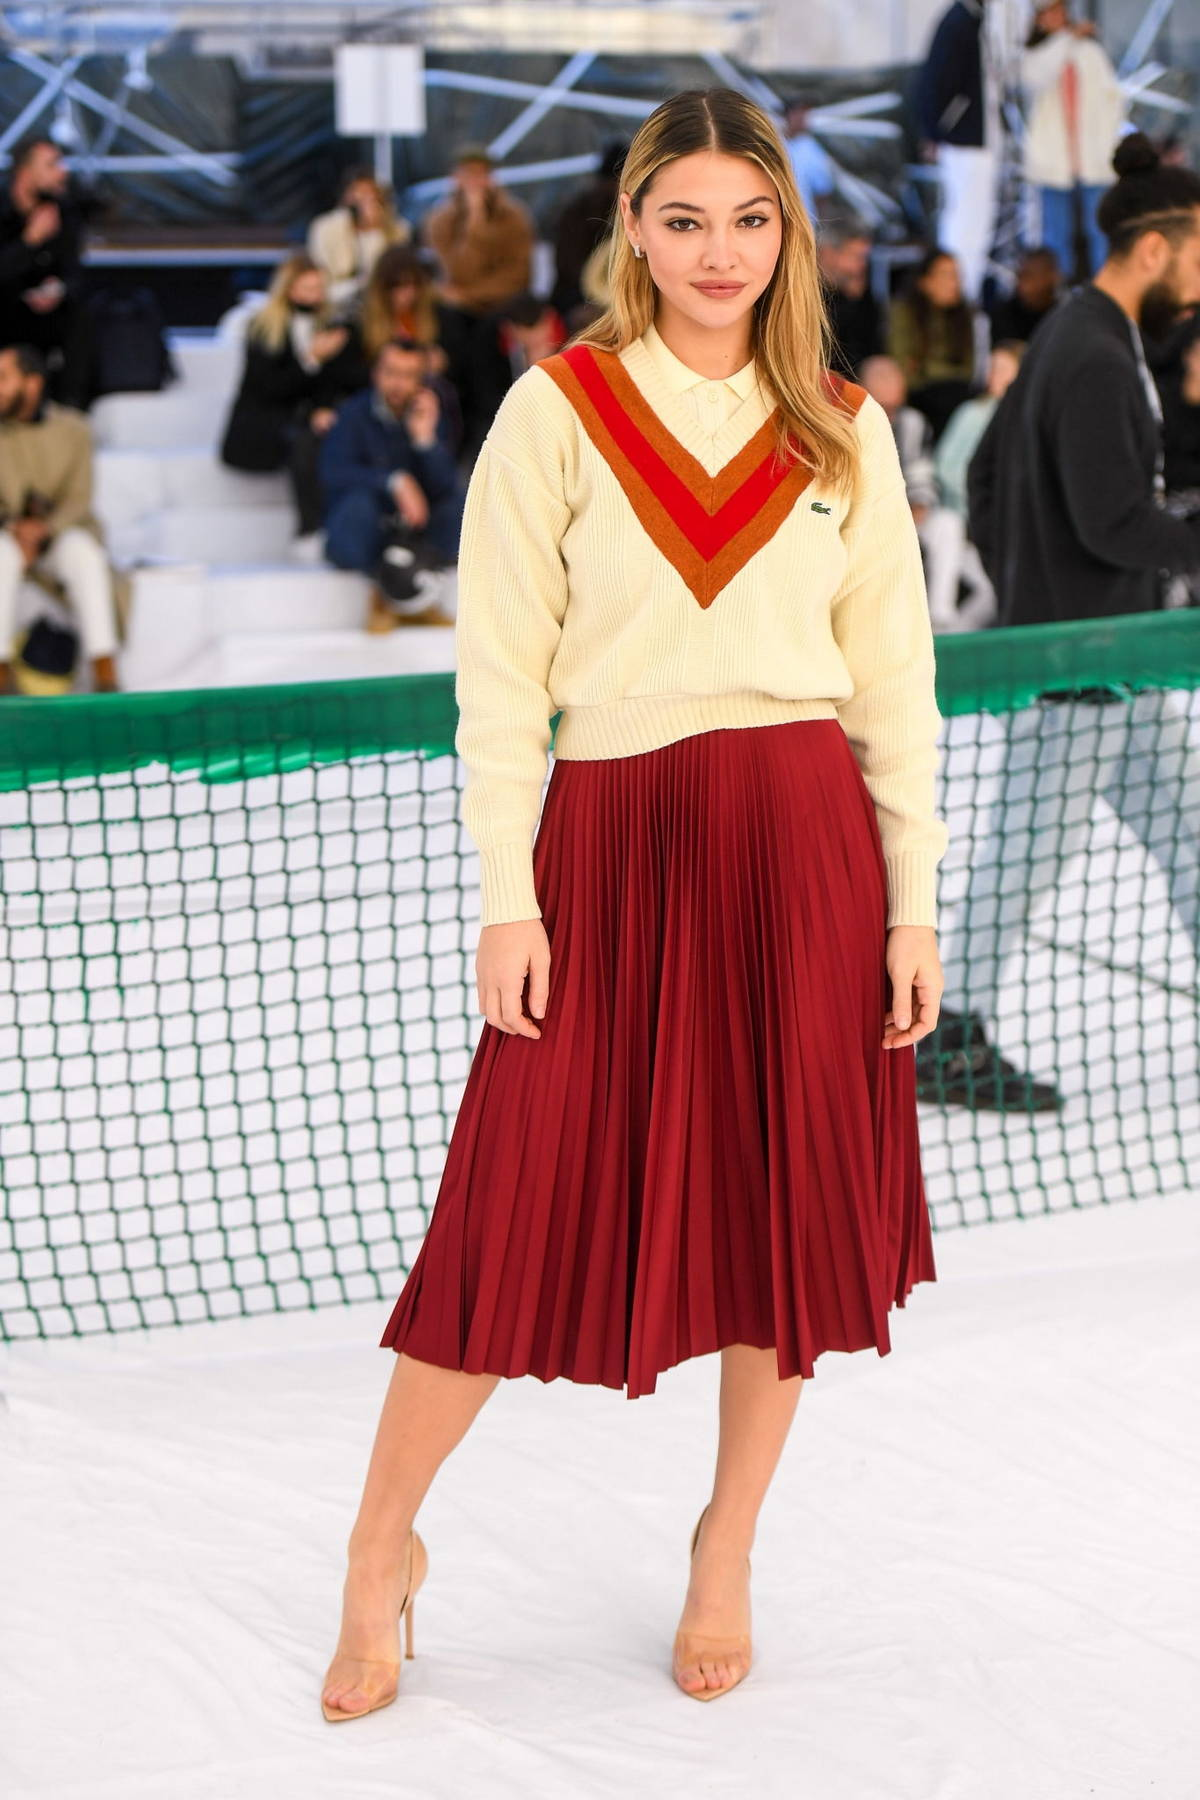 Madelyn Cline attends the Lacoste SS22 show during Paris Fashion Week in Paris, France